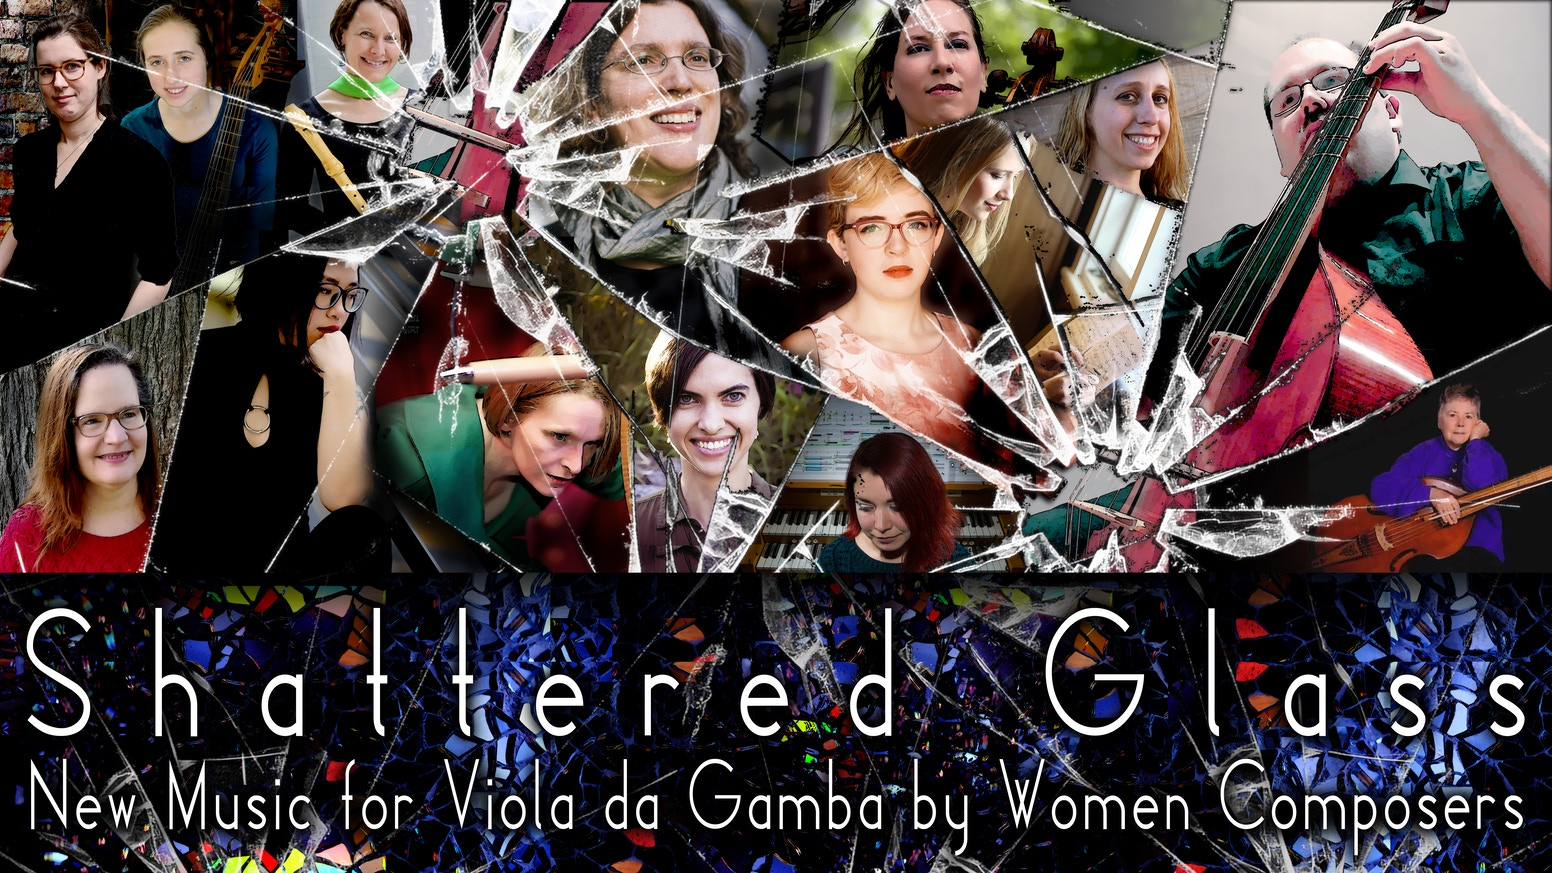 Shattered Glassis a New Music recording featuring bySarah Angliss, Martha Bishop, Eliza Brown, Alice Chance, Emily Doolittle, Lynn Gumert, Helen He, Malina Rauschenfels, Lauren Redhead,Rebecca Rowe,Heather Spence & Patricia Wallinga.